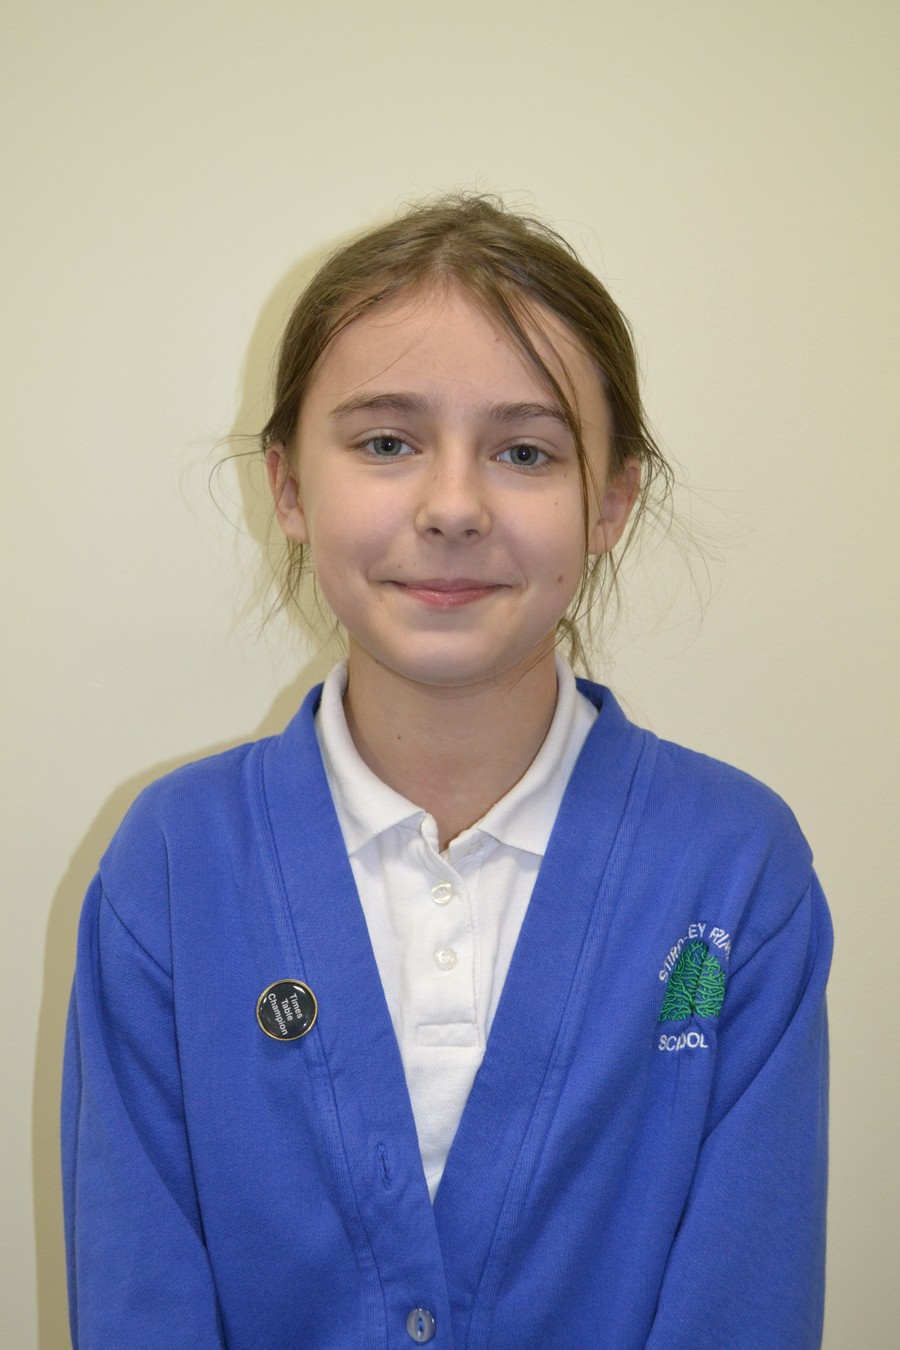 Well done Phoebe!